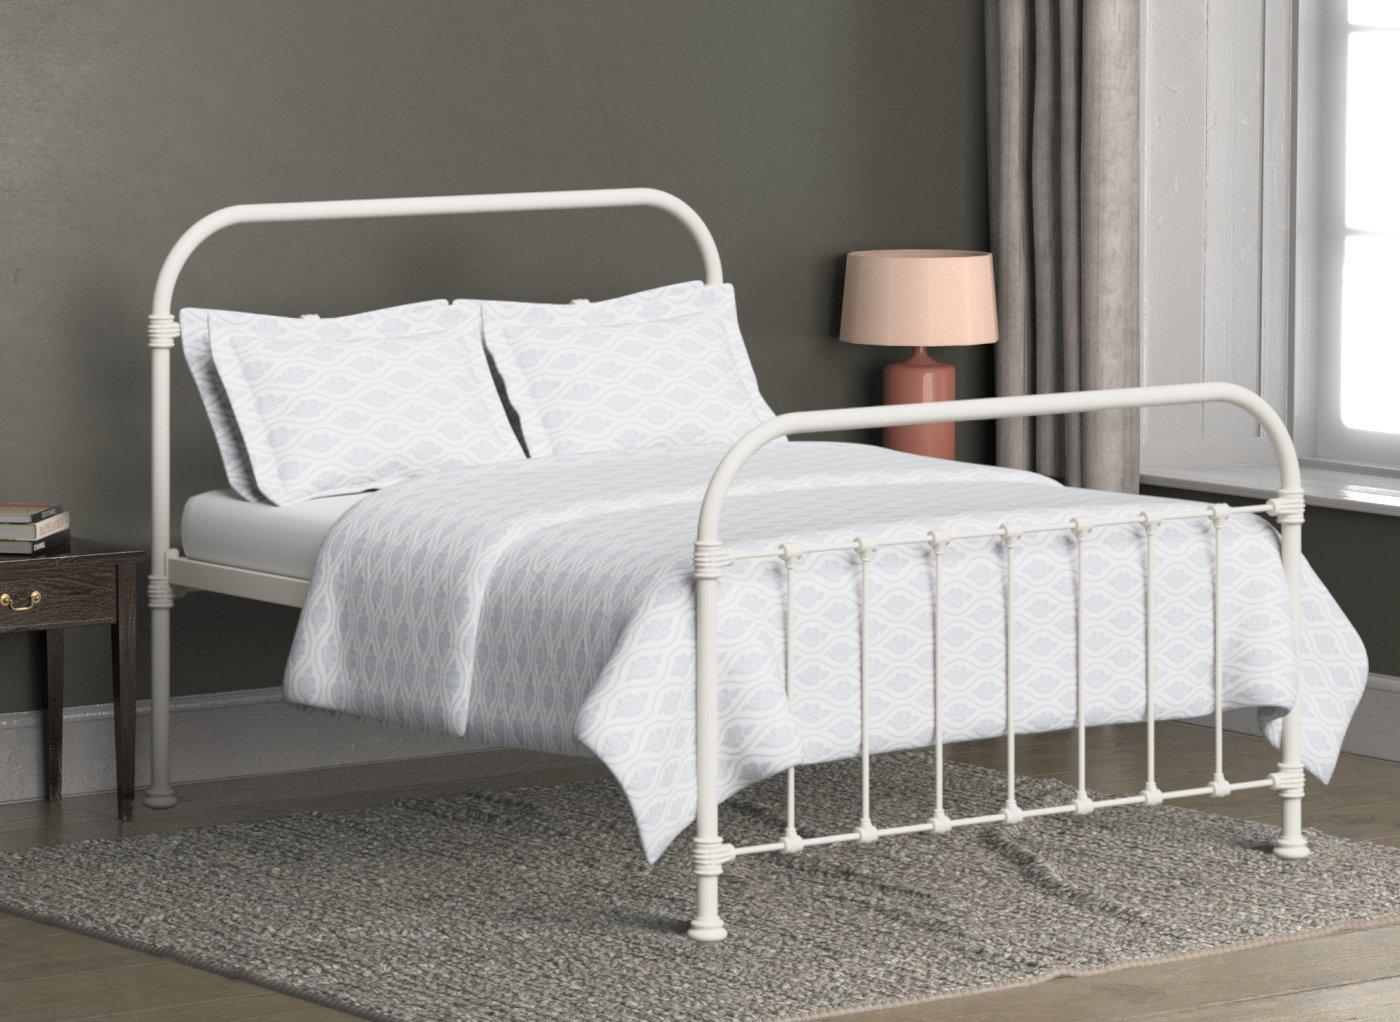 Timolin Ivory Metal Bed Frame 5'0 King CREAM